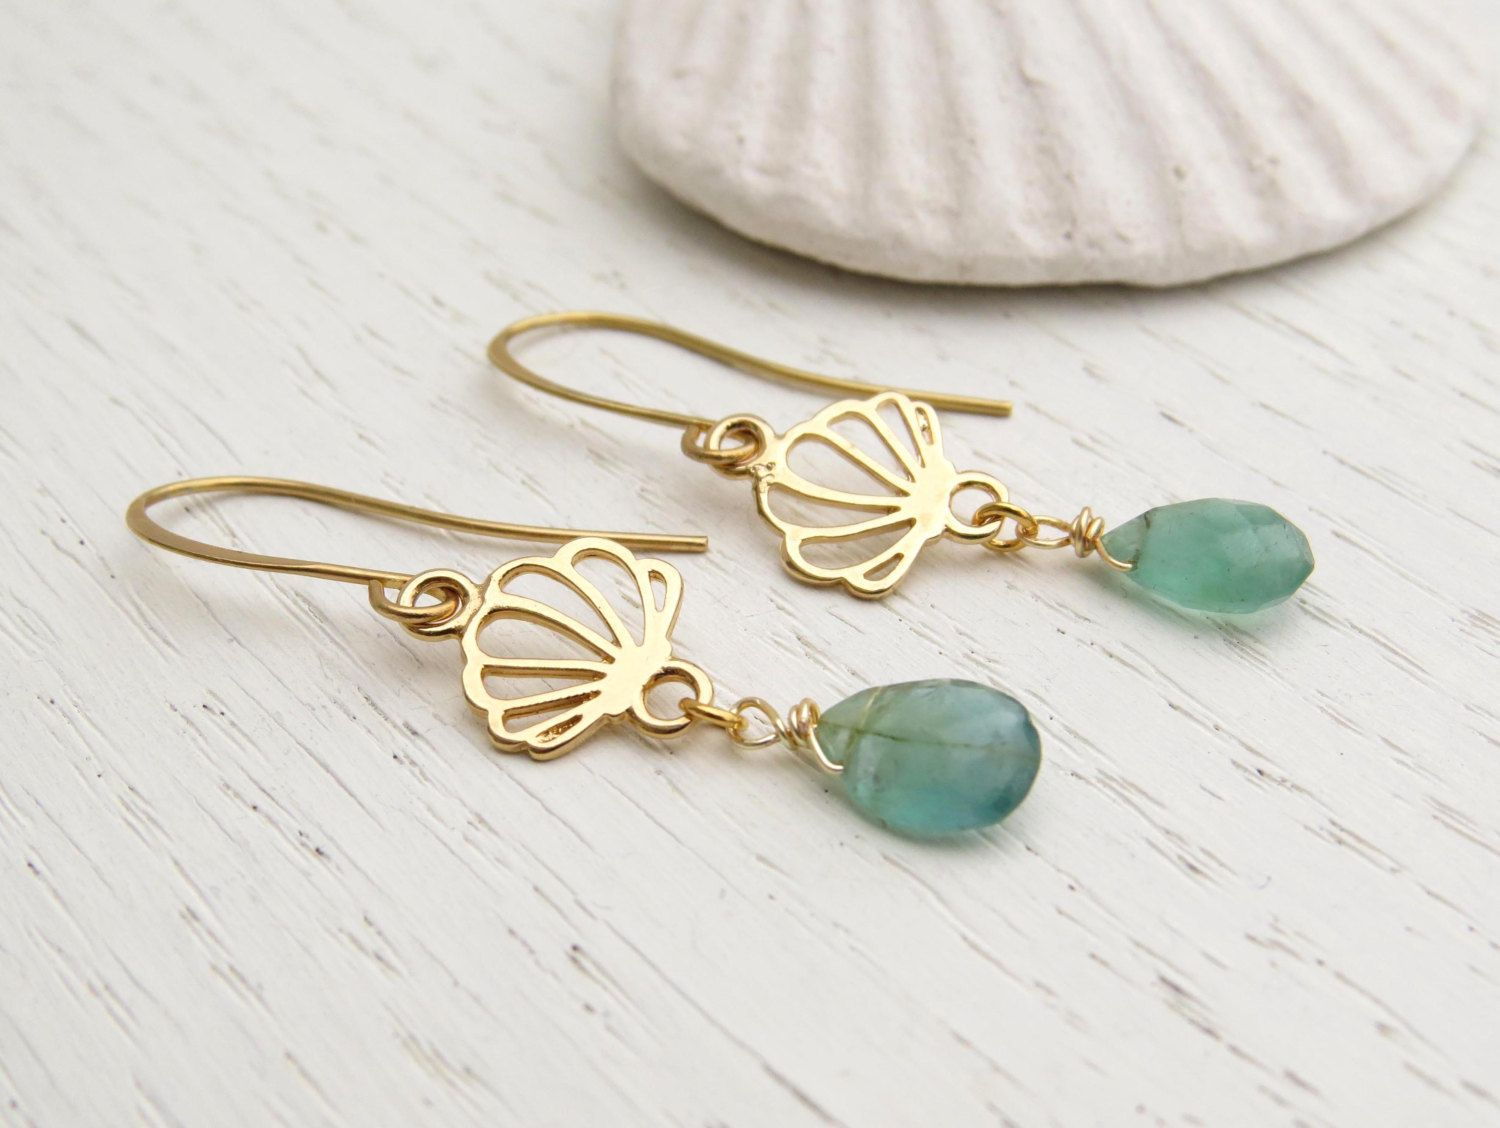 Green apatite earrings Gold seashell earrings Sea inspired jewelry